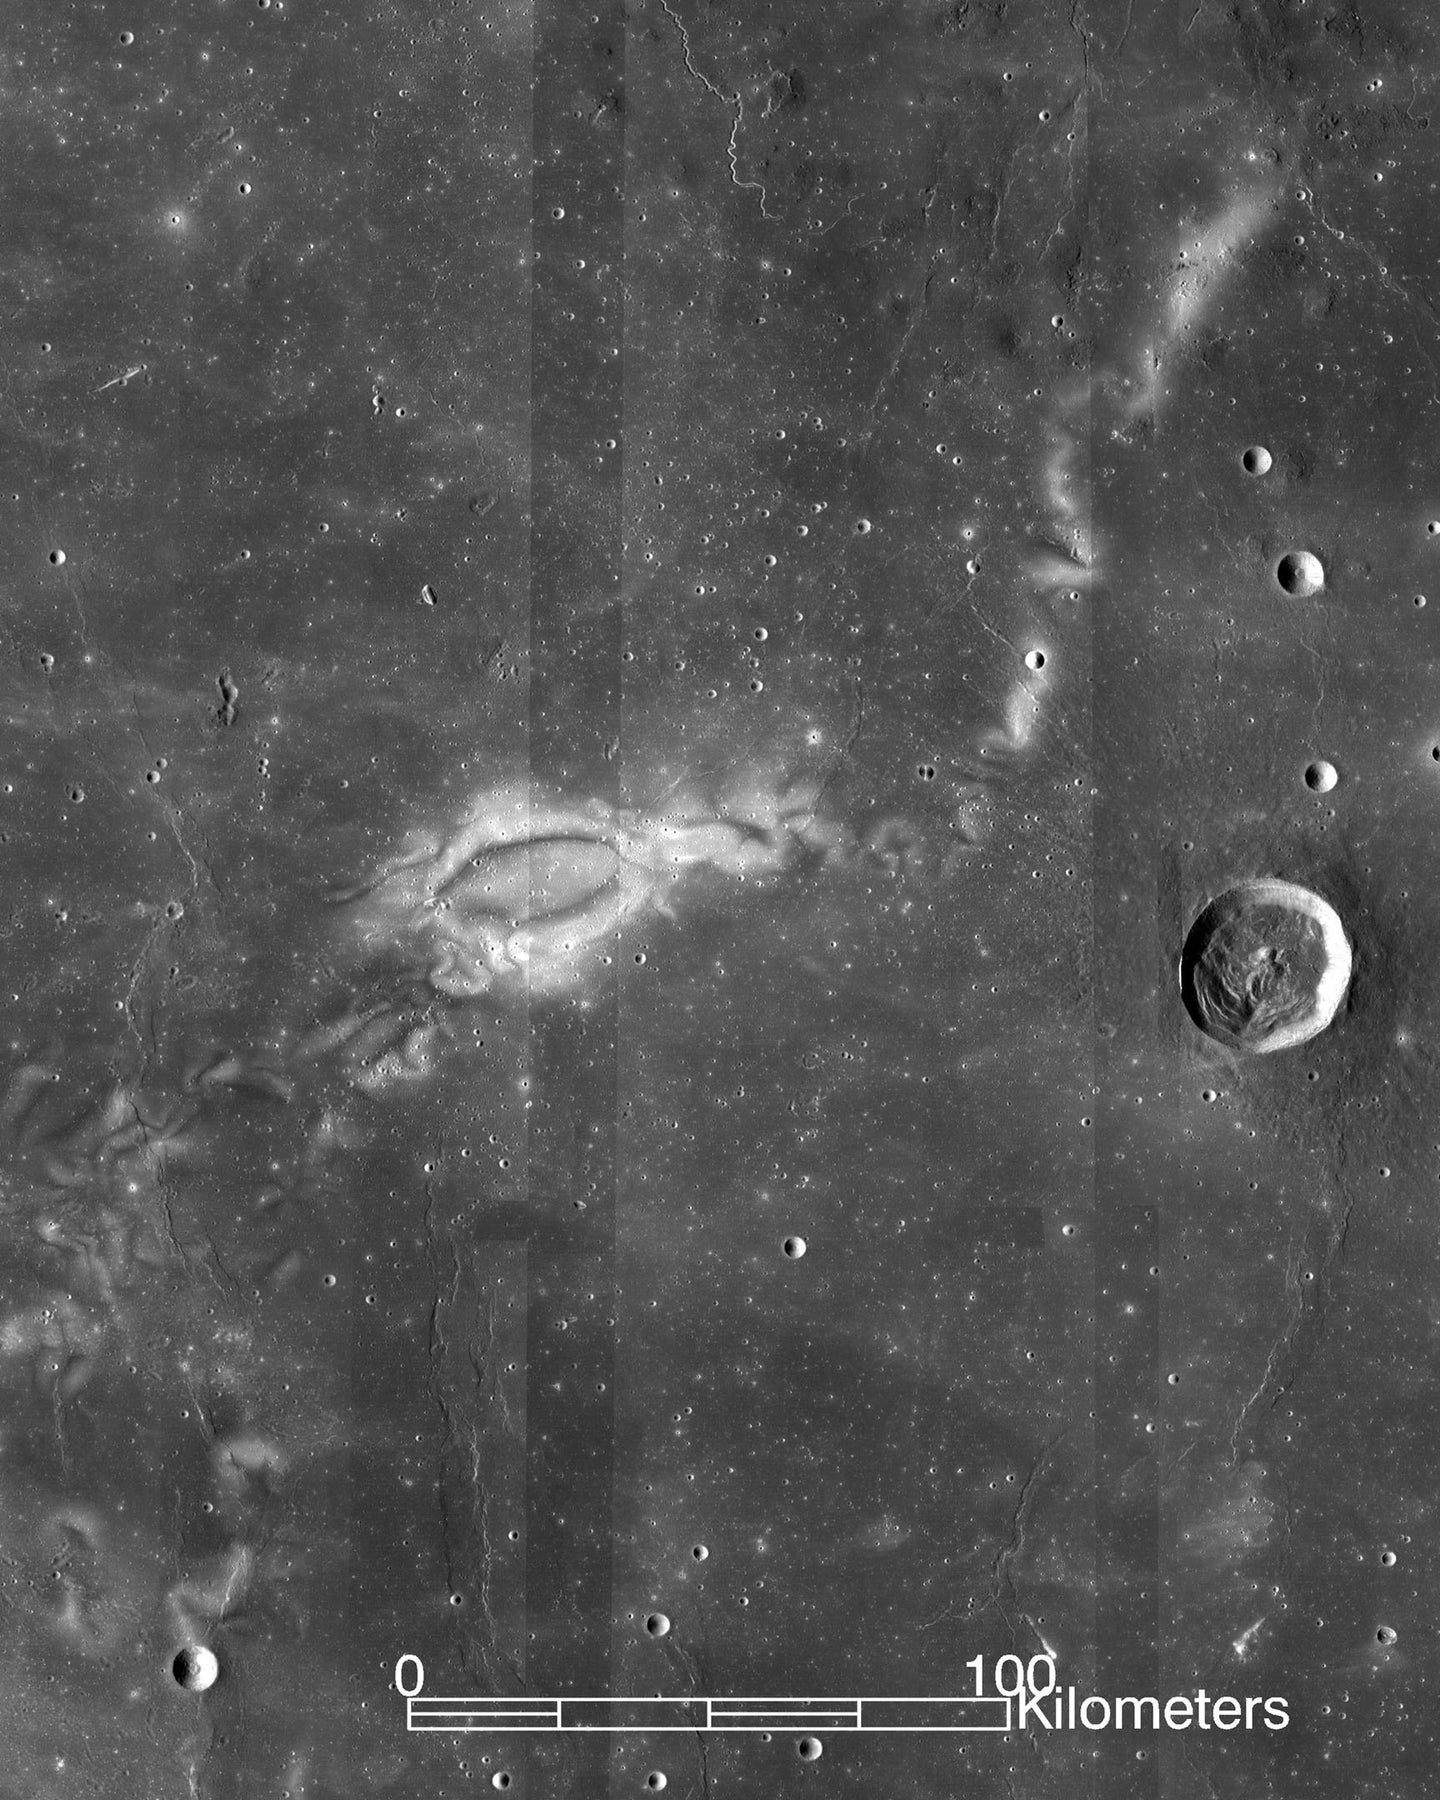 An image of Reiner Gamma on the moon